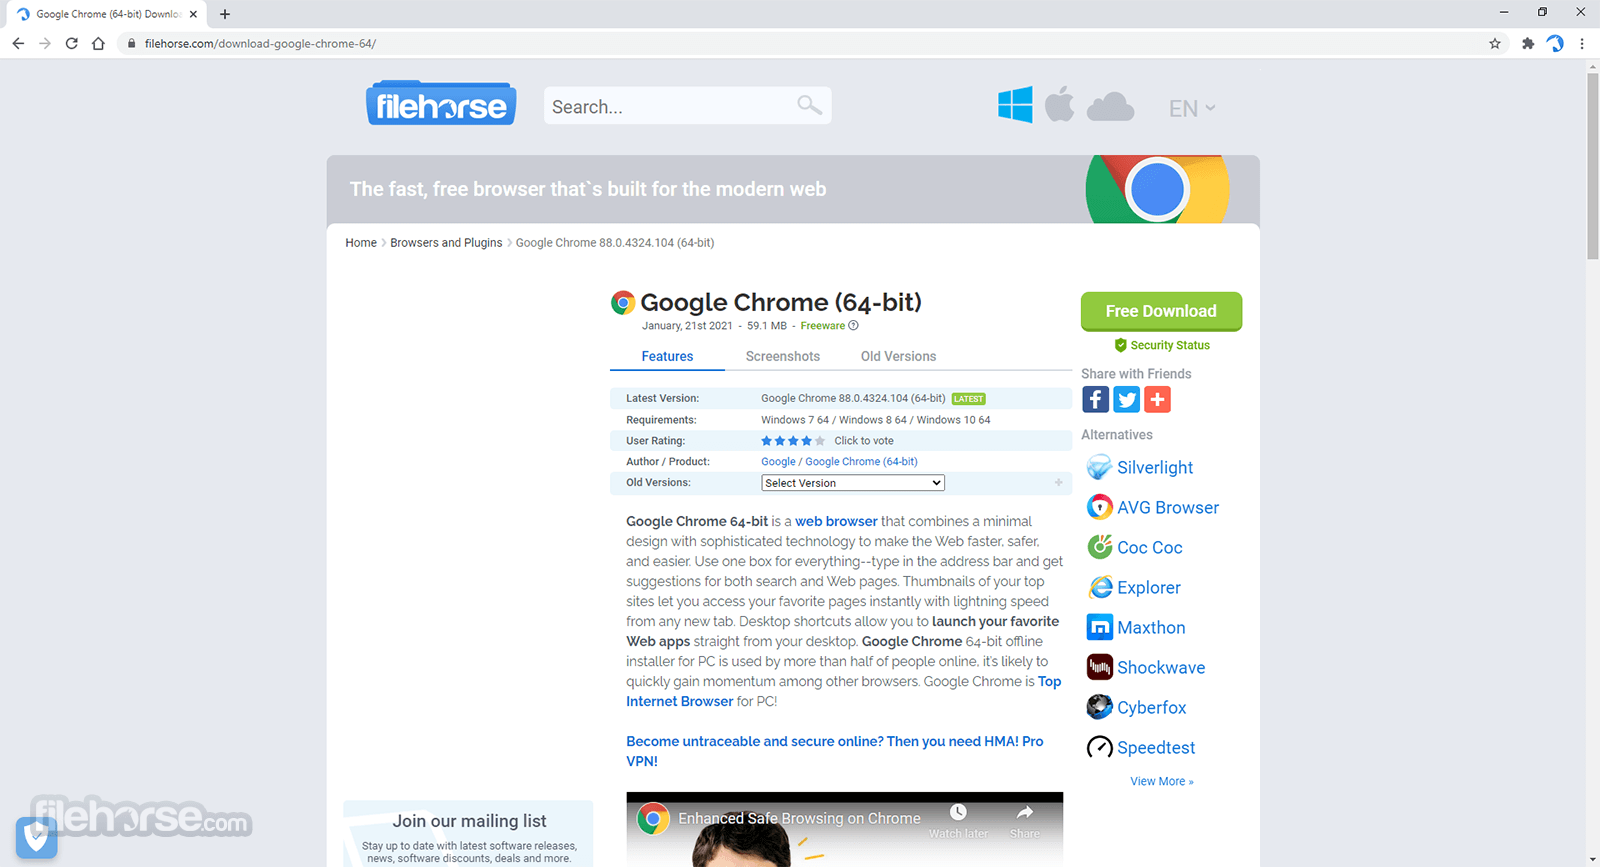 download google chrome setup for windows 10 32 bit